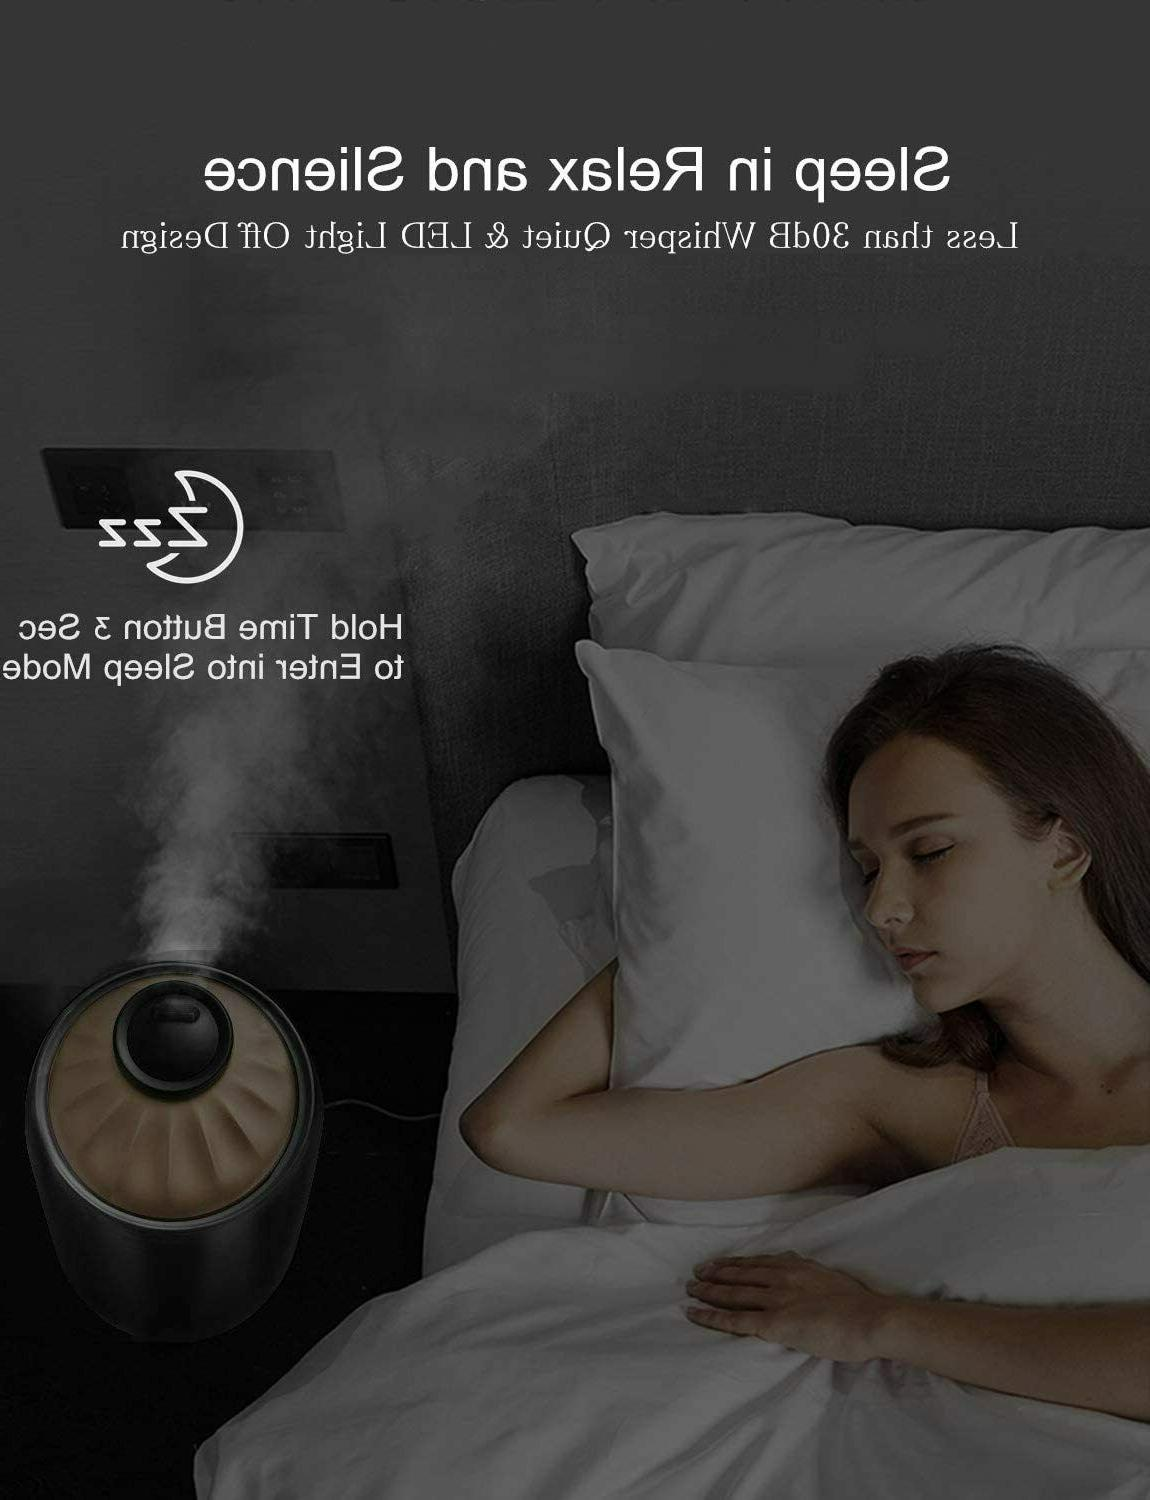 Cool for Baby & Humidifier, Whisper-Quiet